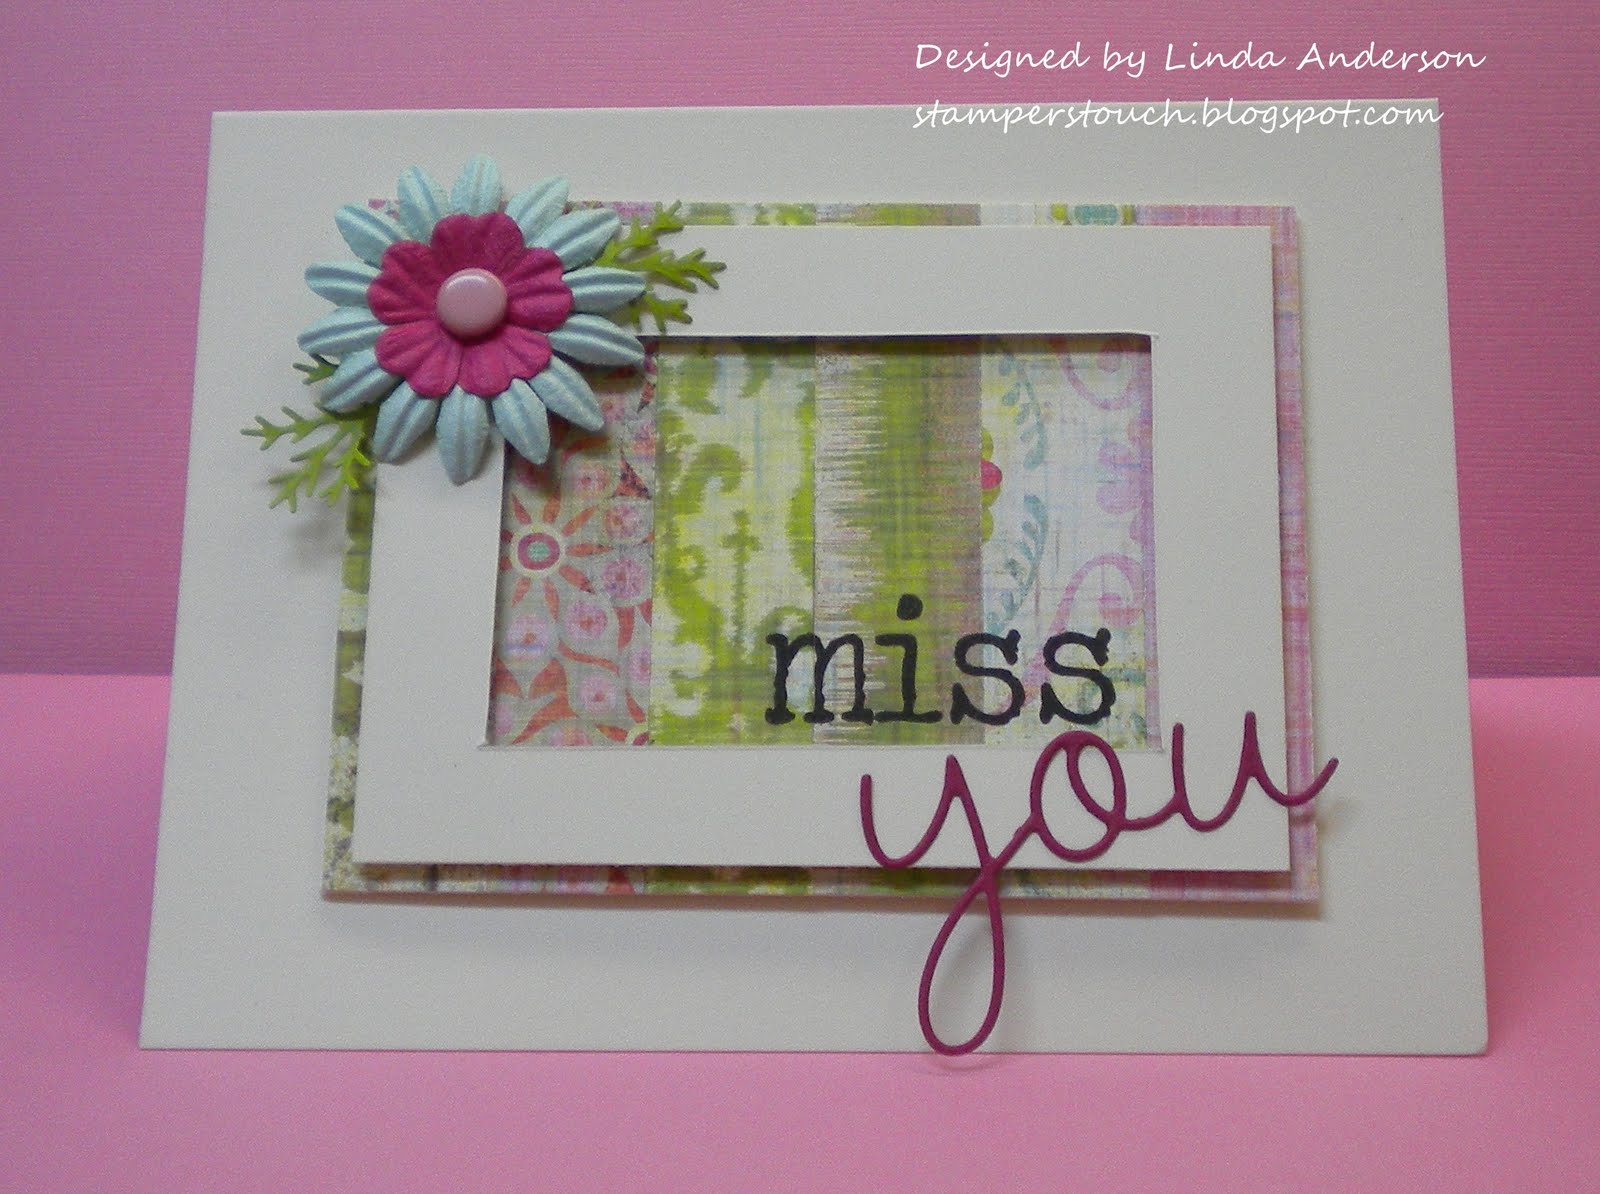 The stampers touch owh i miss you challenge i was asked by jan hunnicutt to make samples for this weeks wednesday throwdown challenge at operation write home owh ships handmade cards to our kristyandbryce Image collections